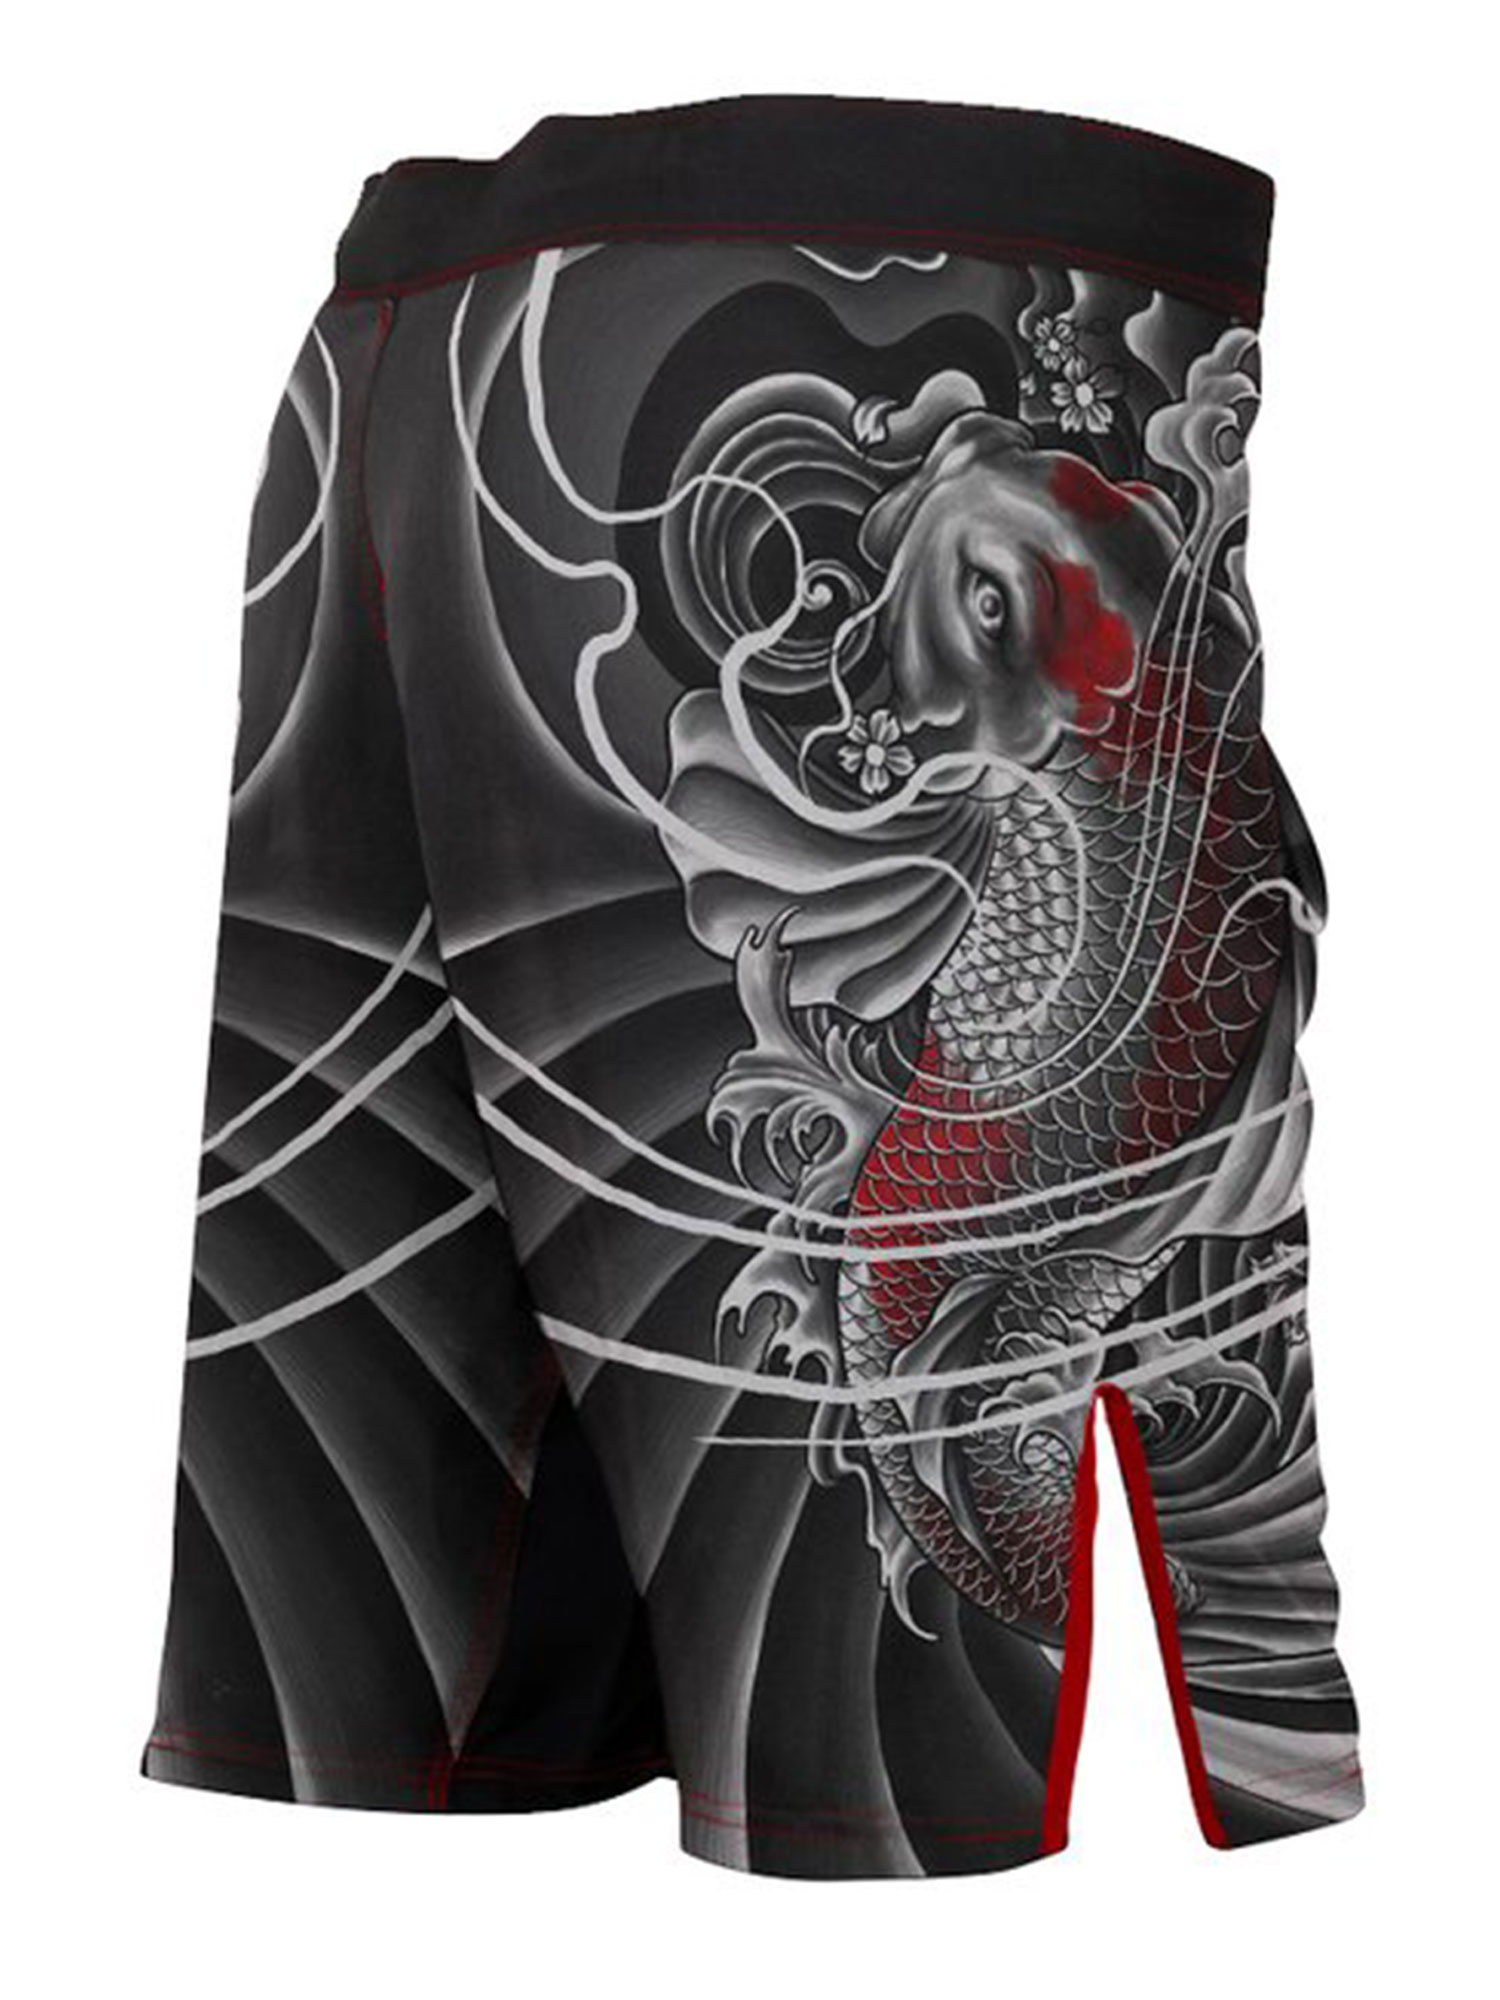 Raven Fightwear Men/'s Irezumi 2.0 Rash Guard MMA BJJ Black